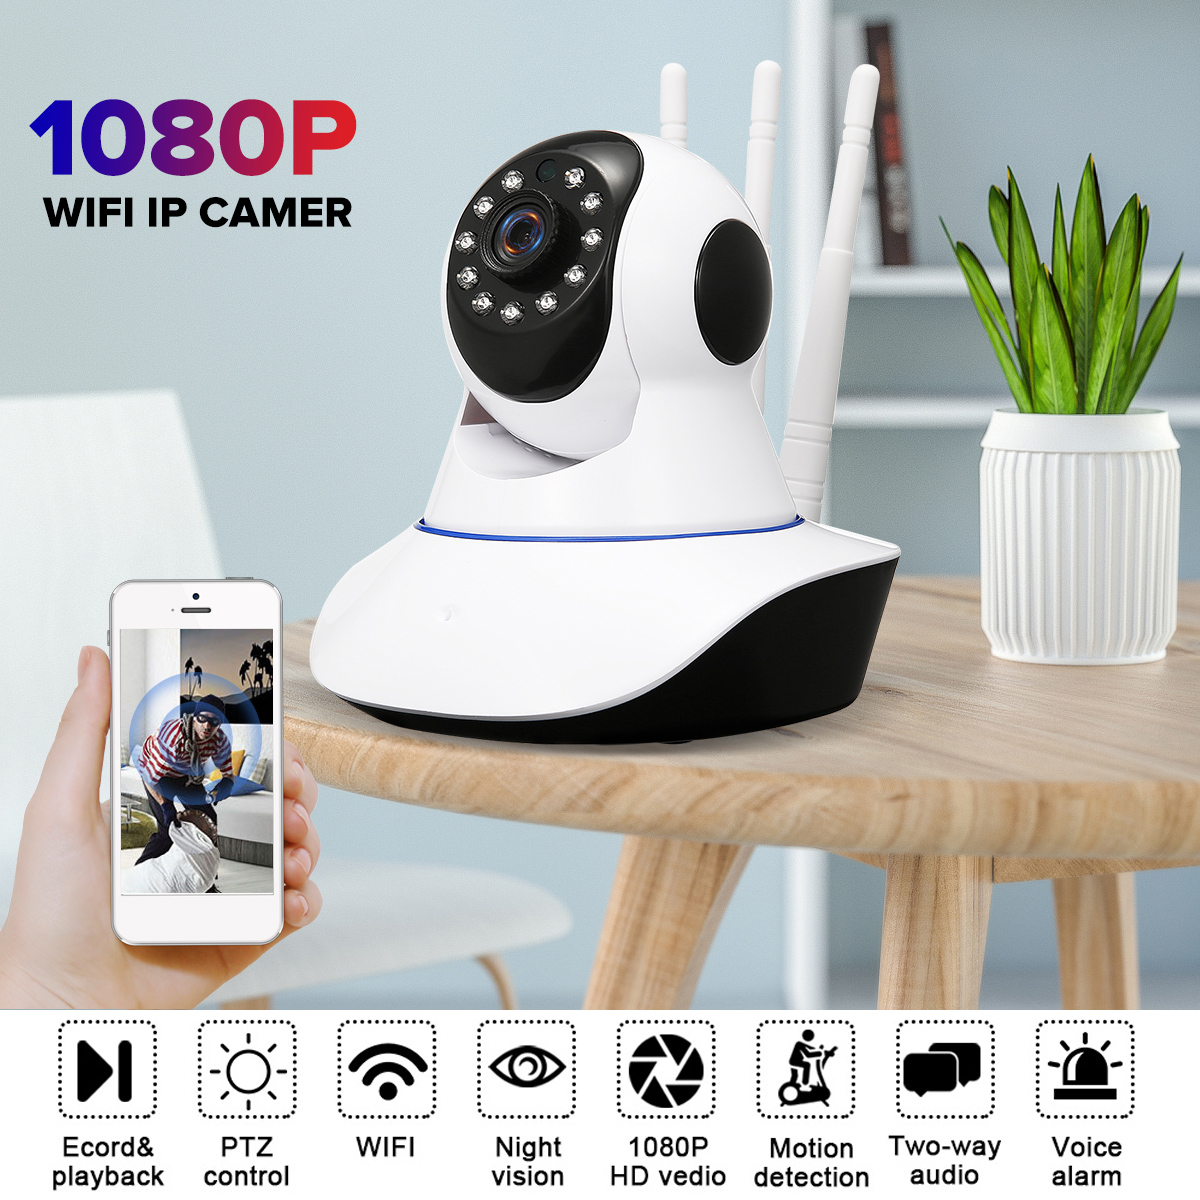 1080P Wireless WIFI IP Camera Home Indoor Security Monitor Smart Network Video System Two Way Audio / Night Vision / PTZ / APP